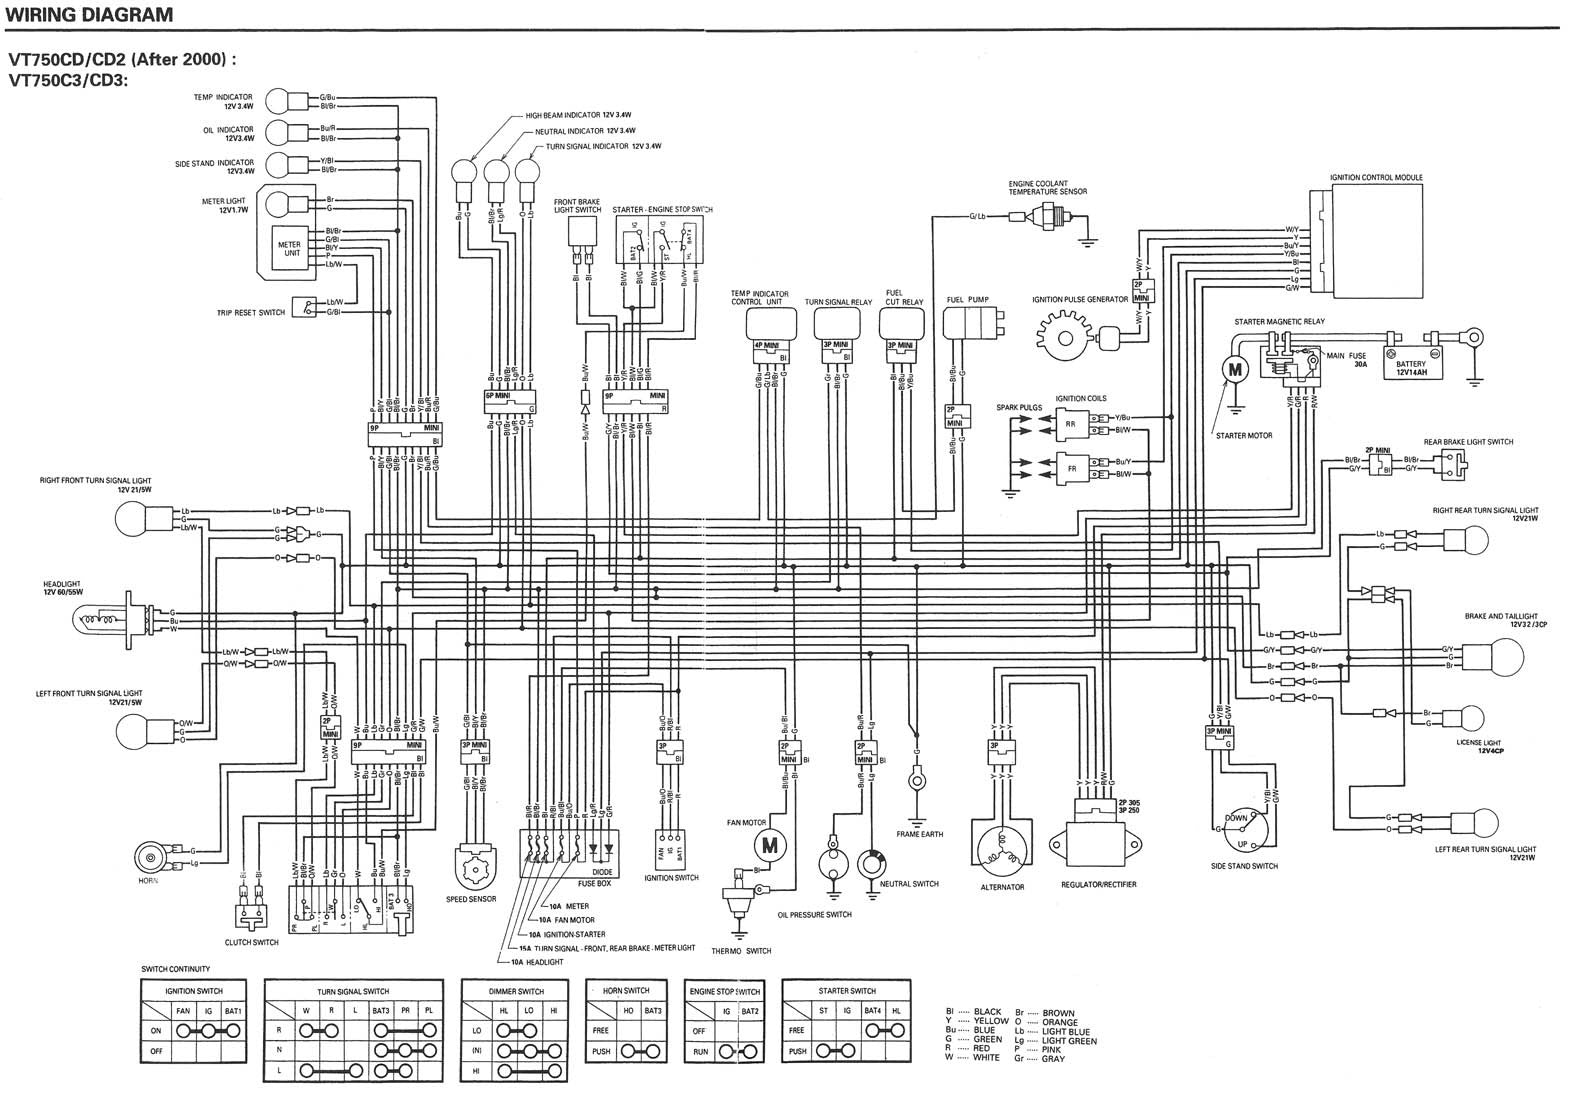 2012 Honda Turn Signal Wiring Diagram - 4.3.derma-lift.de • on basic fuel gauge diagram, simple turn signal diagram, basic wiring for old trucks, turn signal switch diagram, chevy turn signal diagram,